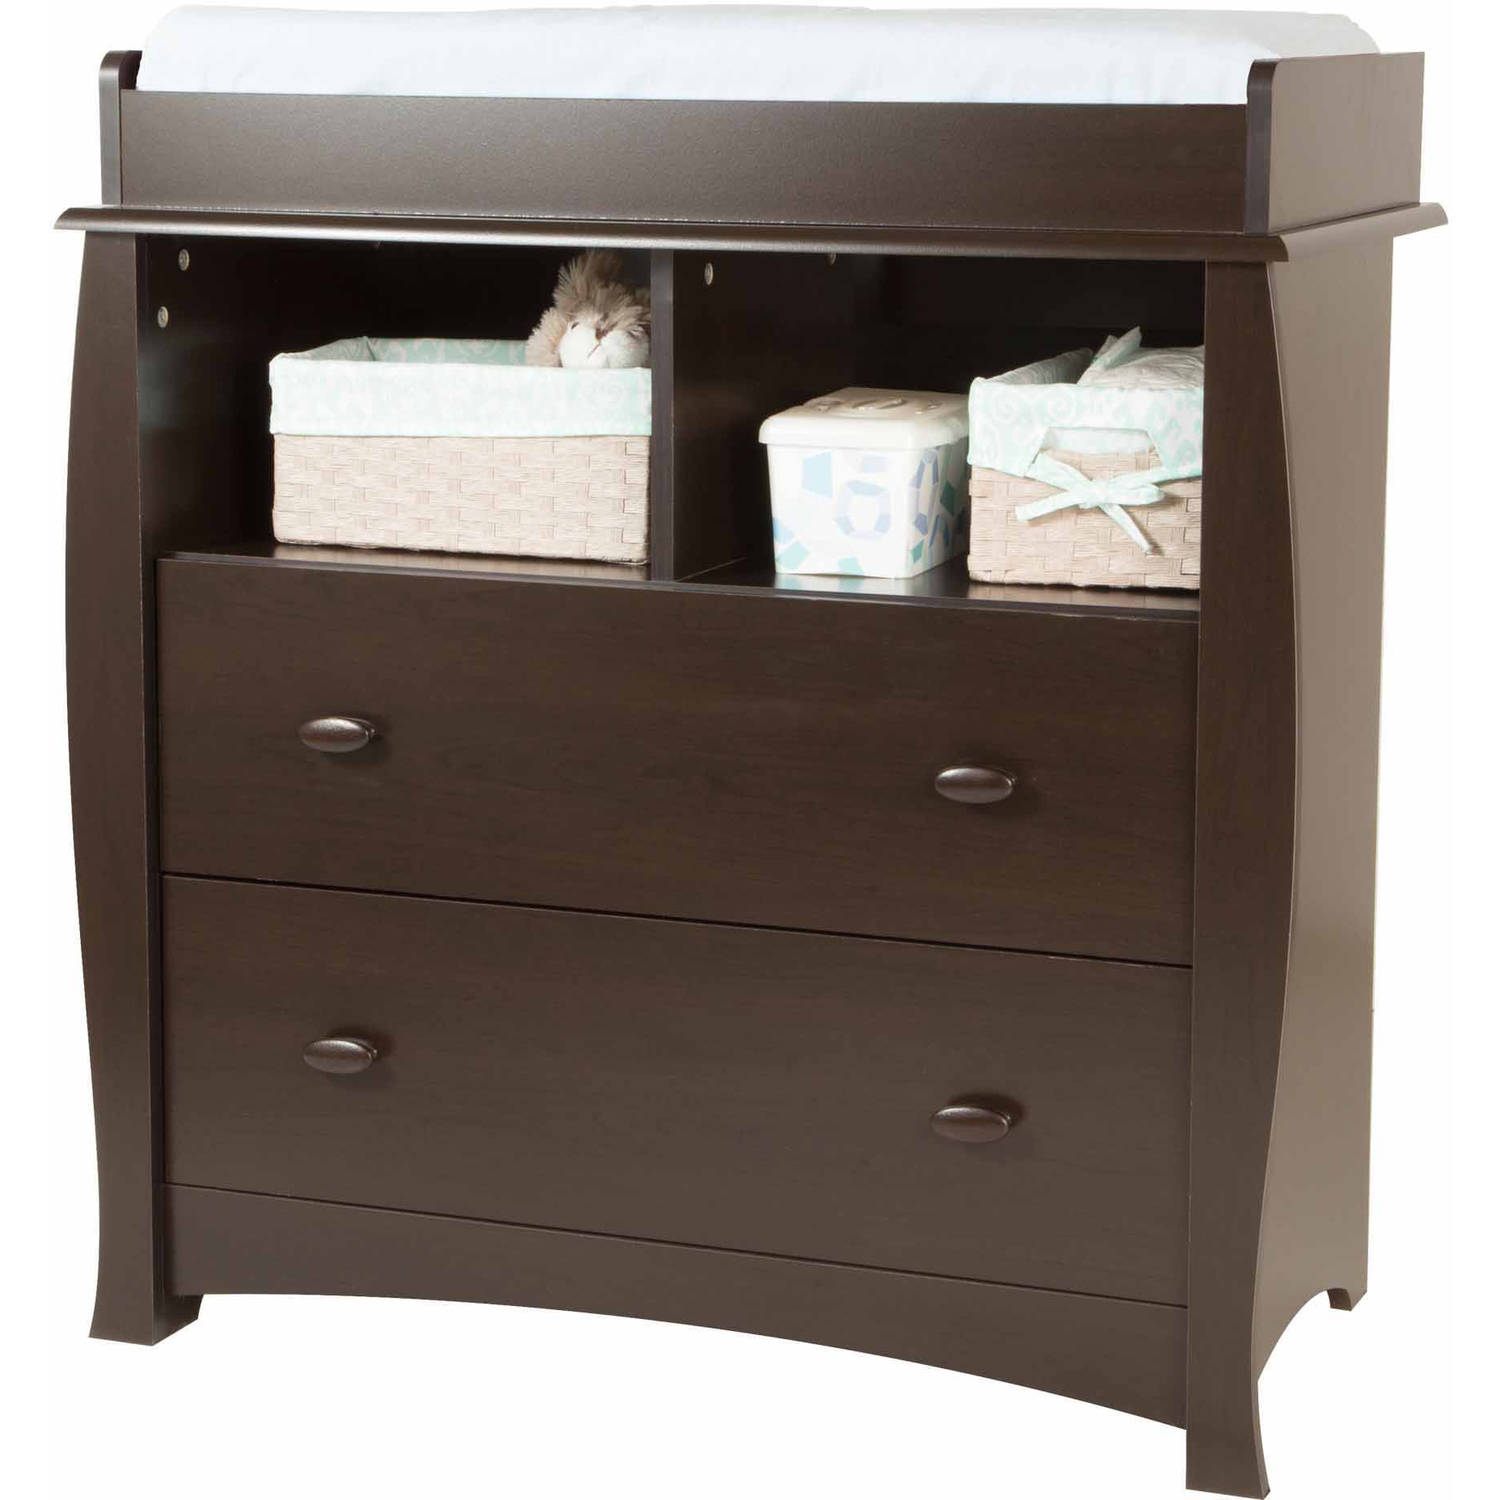 South Shore Beehive Changing Table with Removable Changing Station, Multiple Finishes